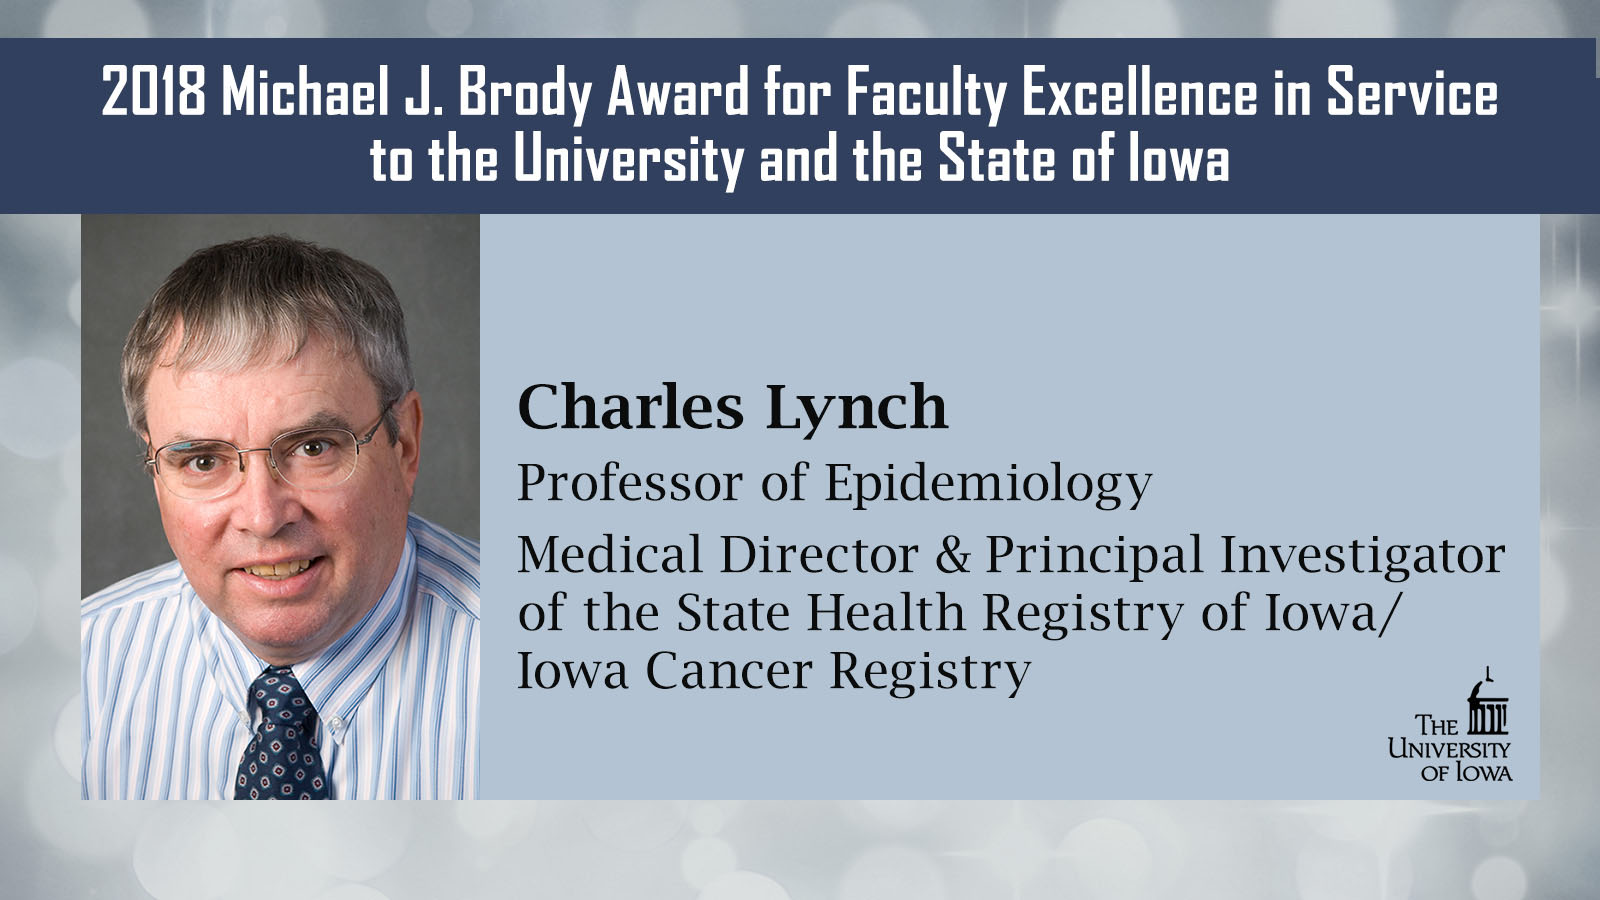 Chuck Lynch 2018 Michael J. Brody Award for Faculty Excellence